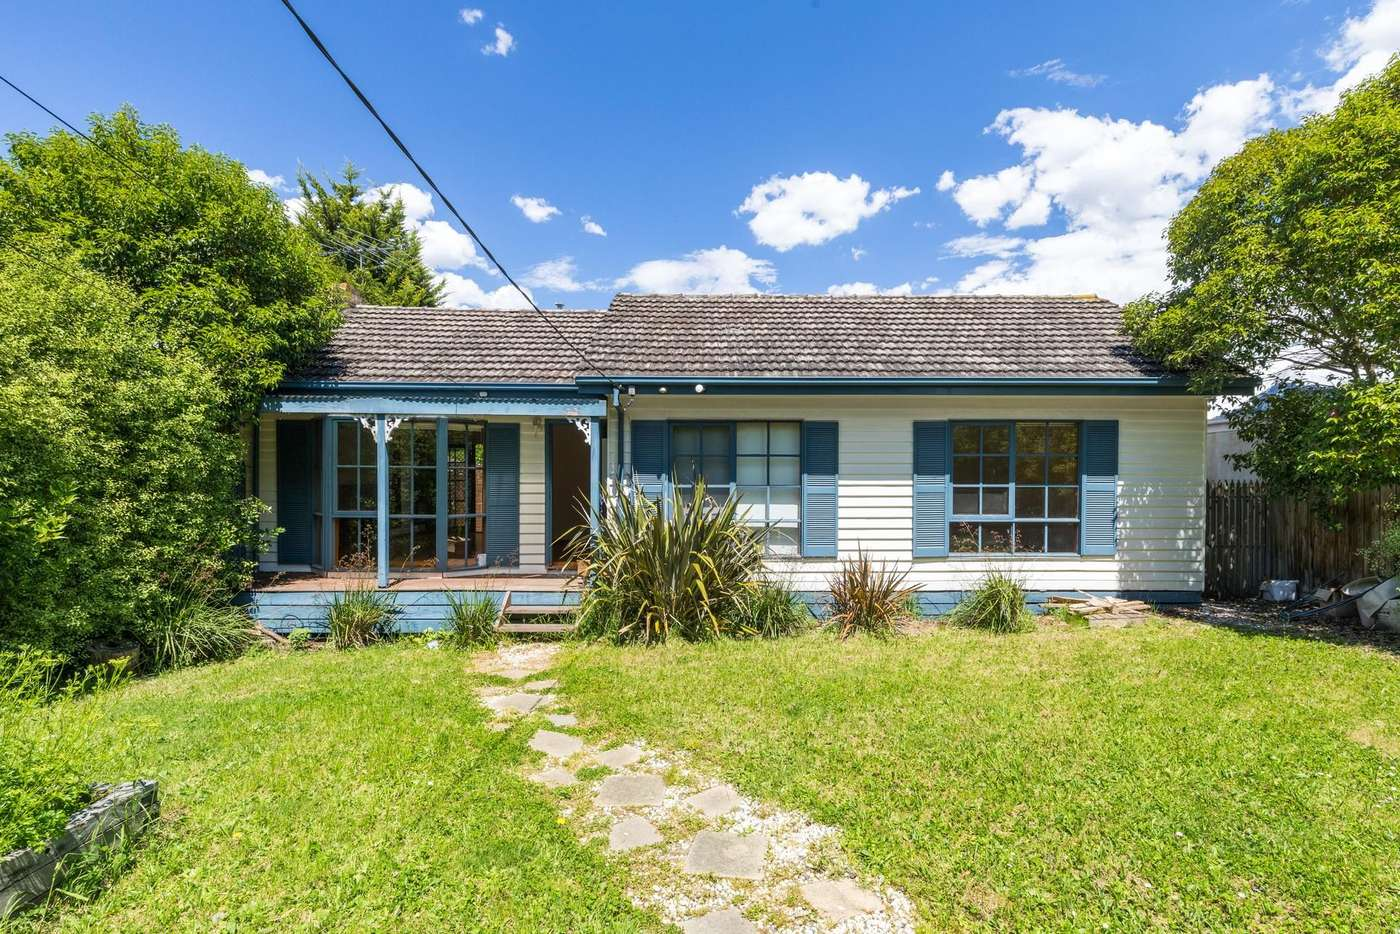 Main view of Homely house listing, 1/7 Lucille Avenue, Croydon South VIC 3136